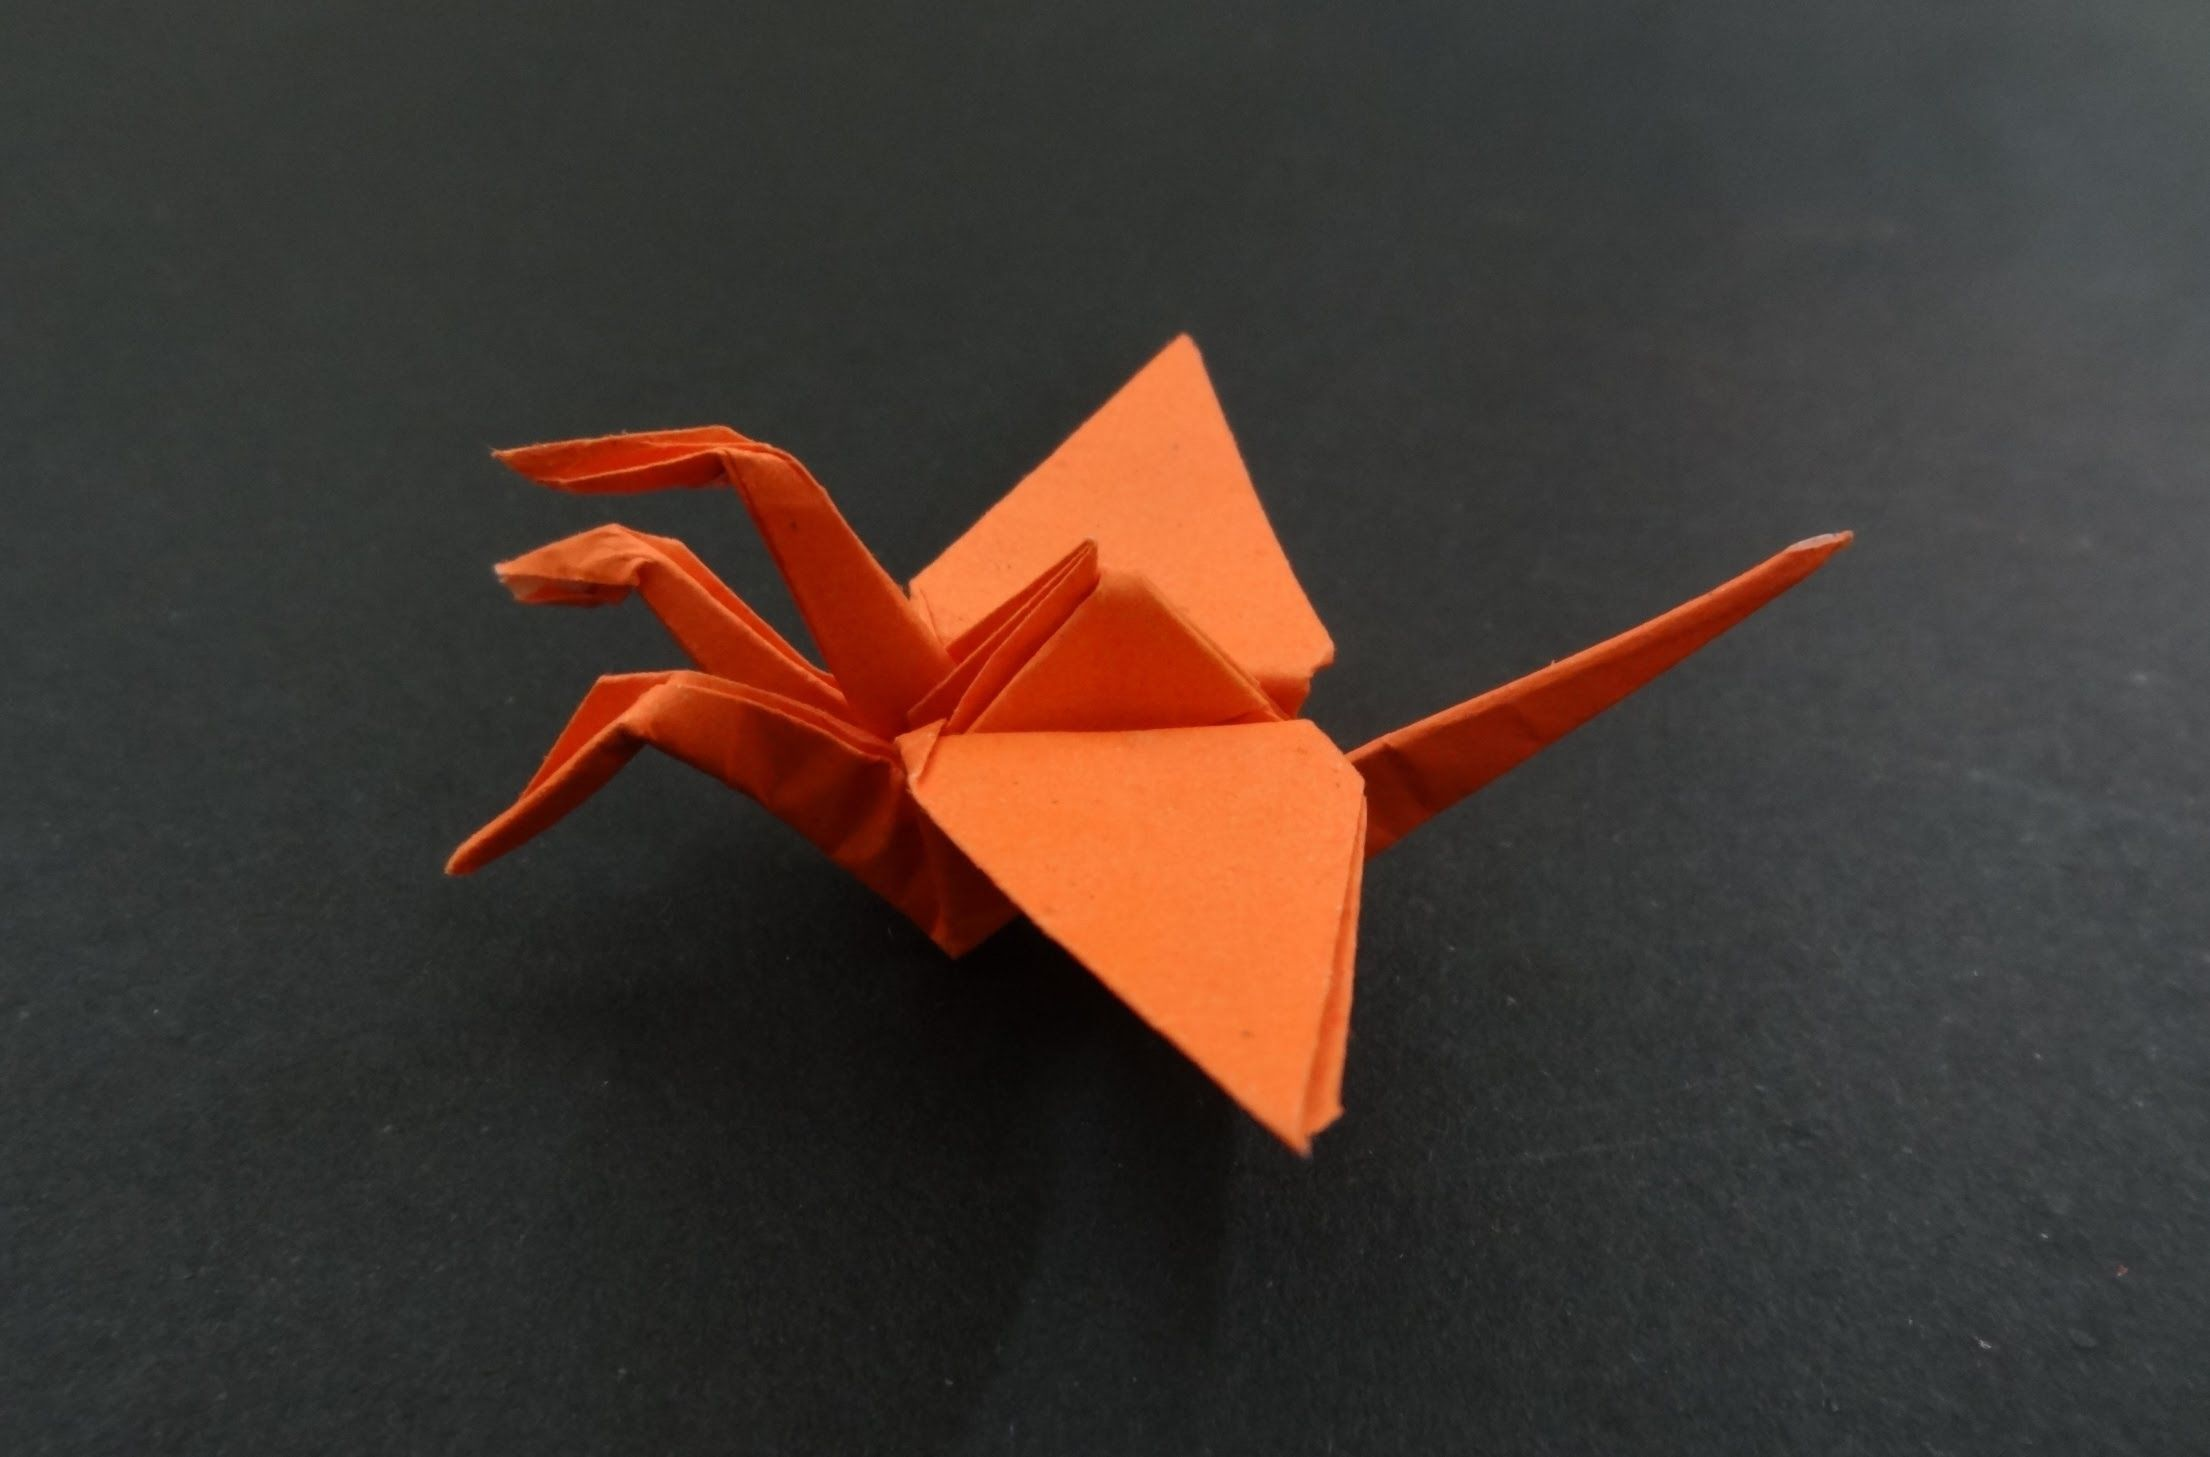 Origami Crane Tutorial: How to fold 3 Headed Origami Crane ... - photo#50